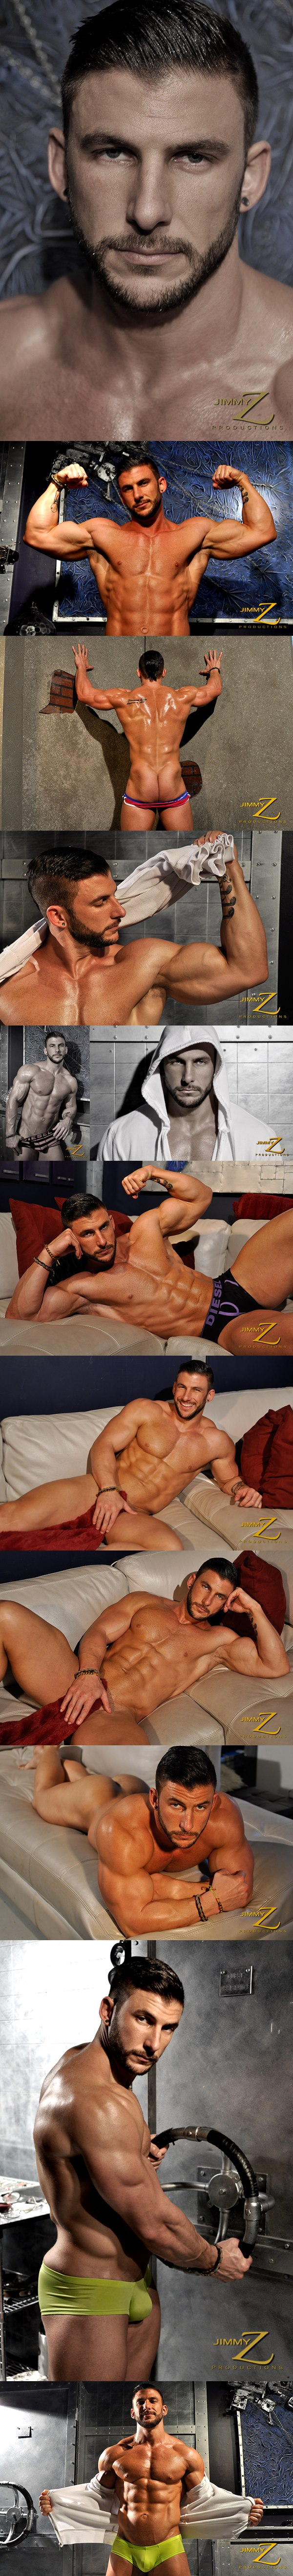 Gorgeous Ryan Monroe shows off and oils up his hot body in Physique Interview 2 at Jimmyzproductions 01